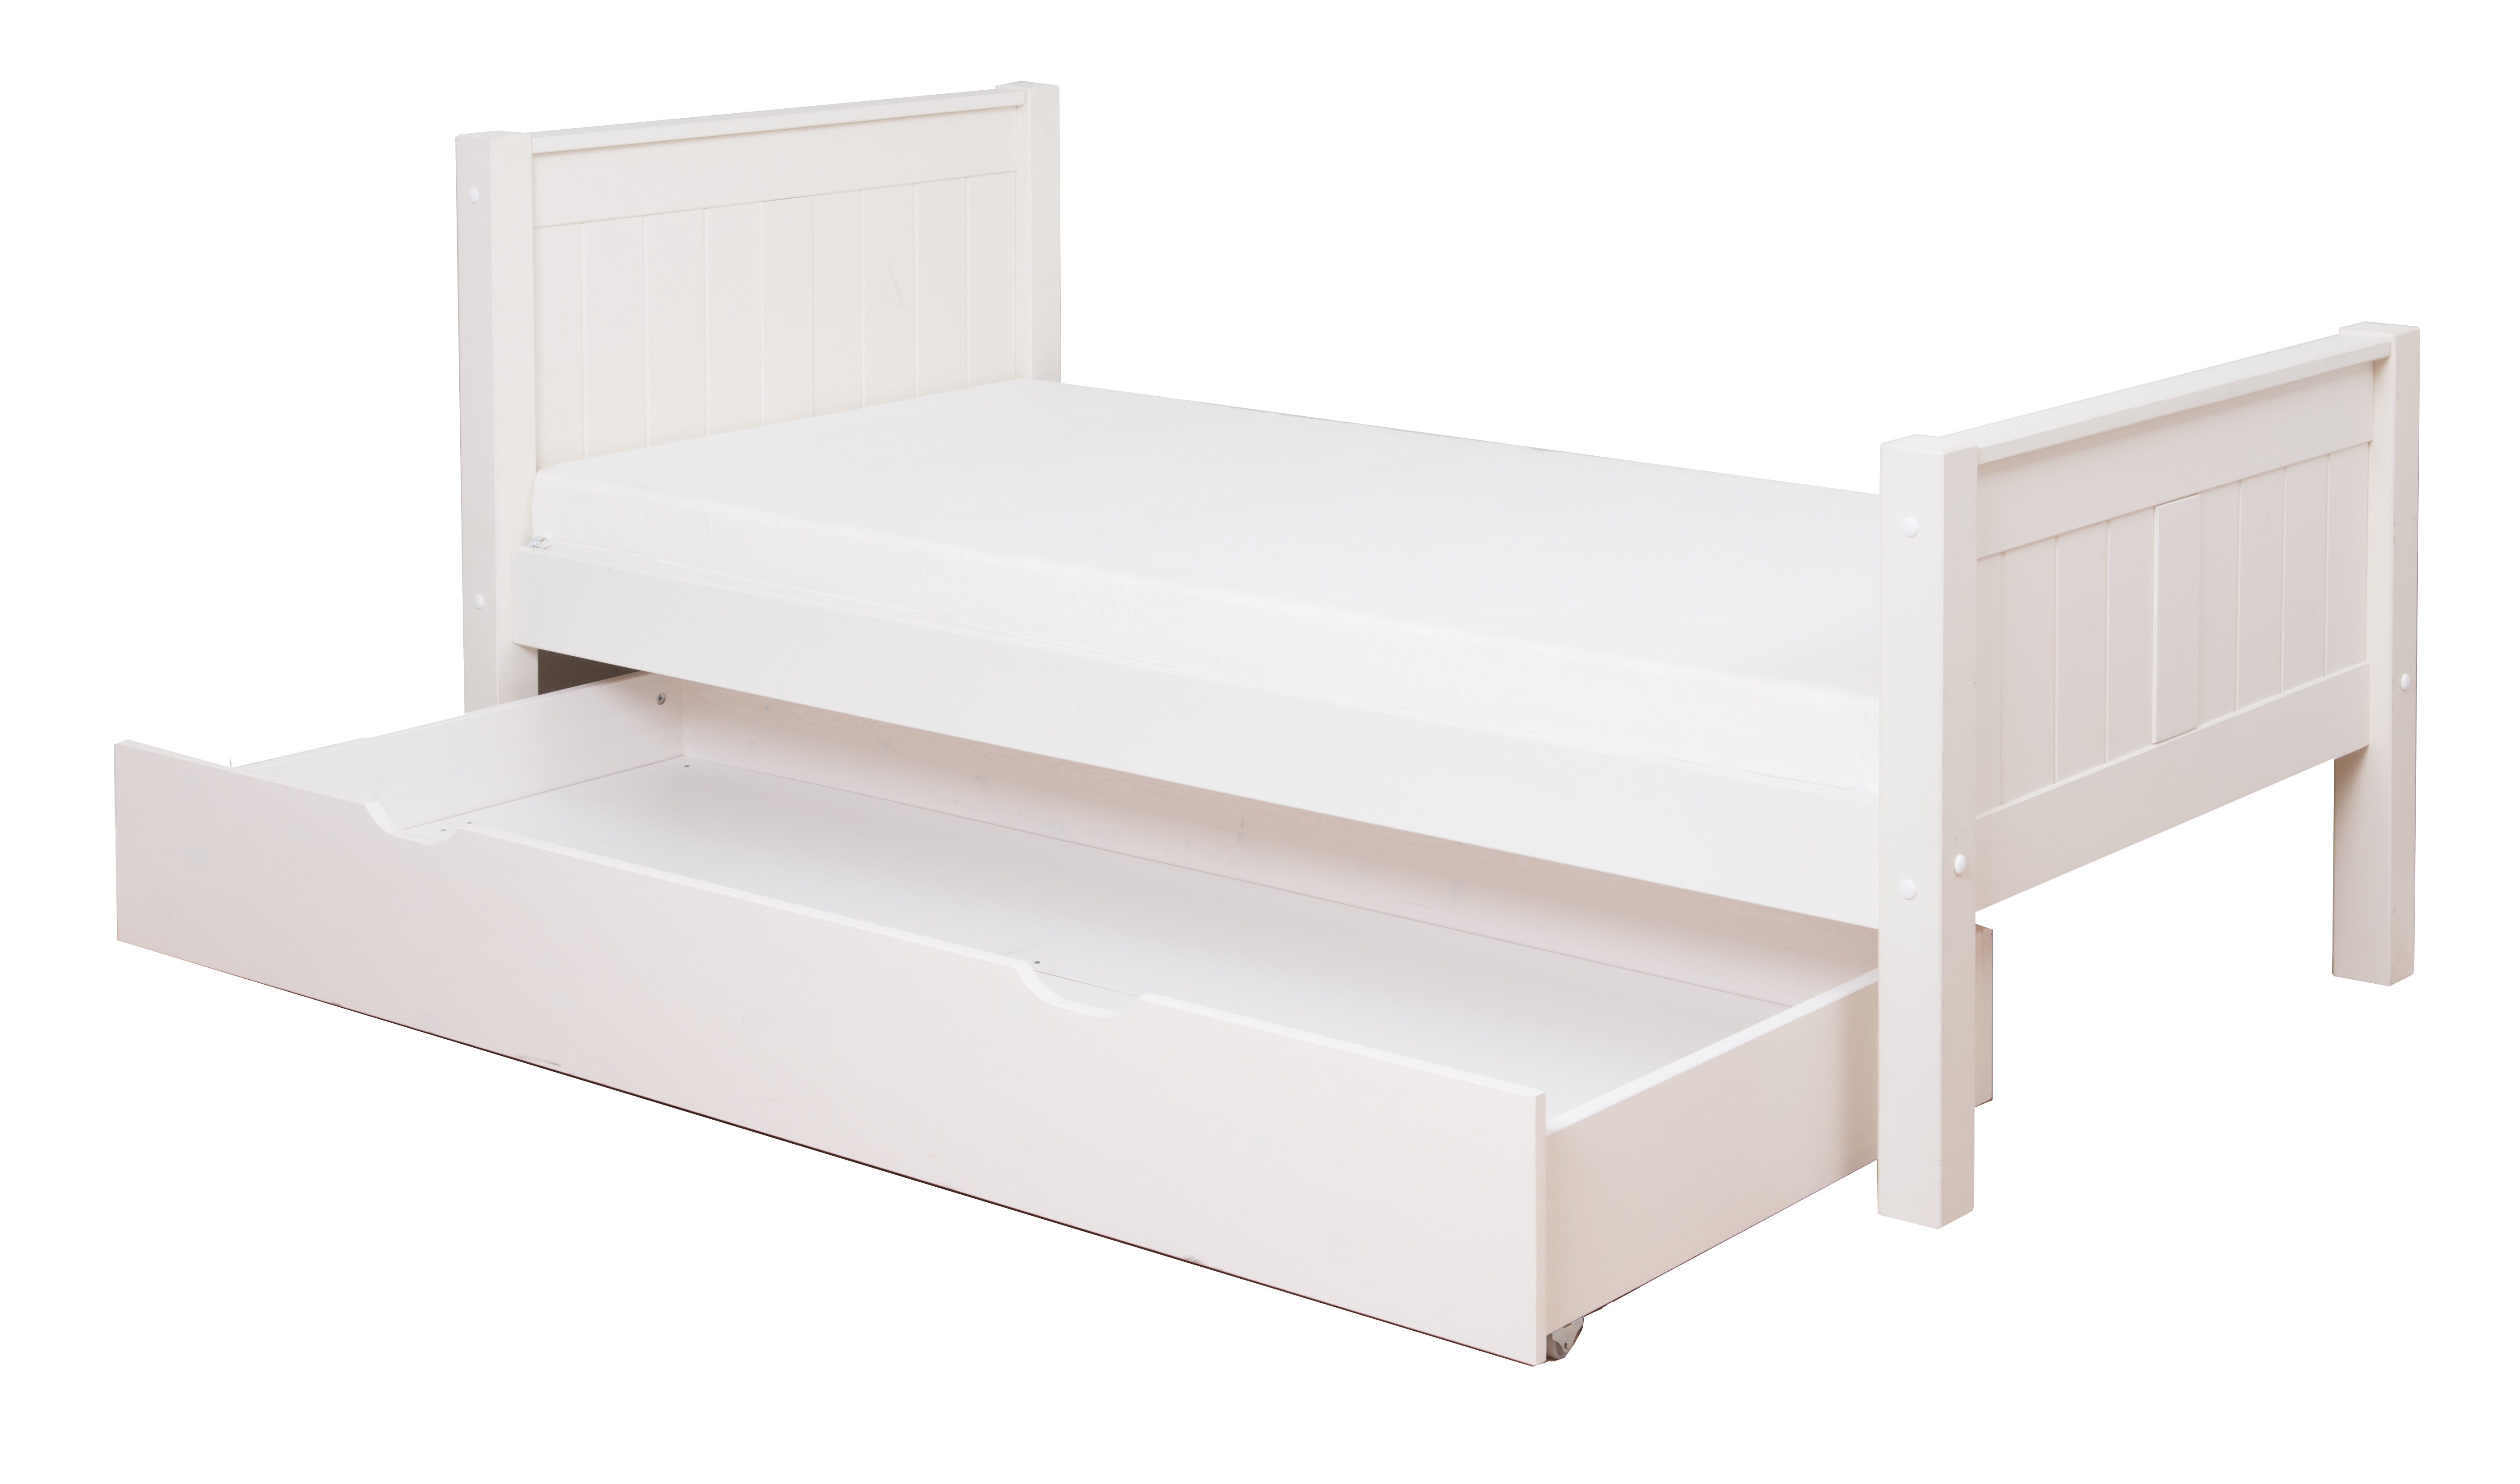 Underbedtrundledrawer Clic Single Bed With Trundle By Stompa